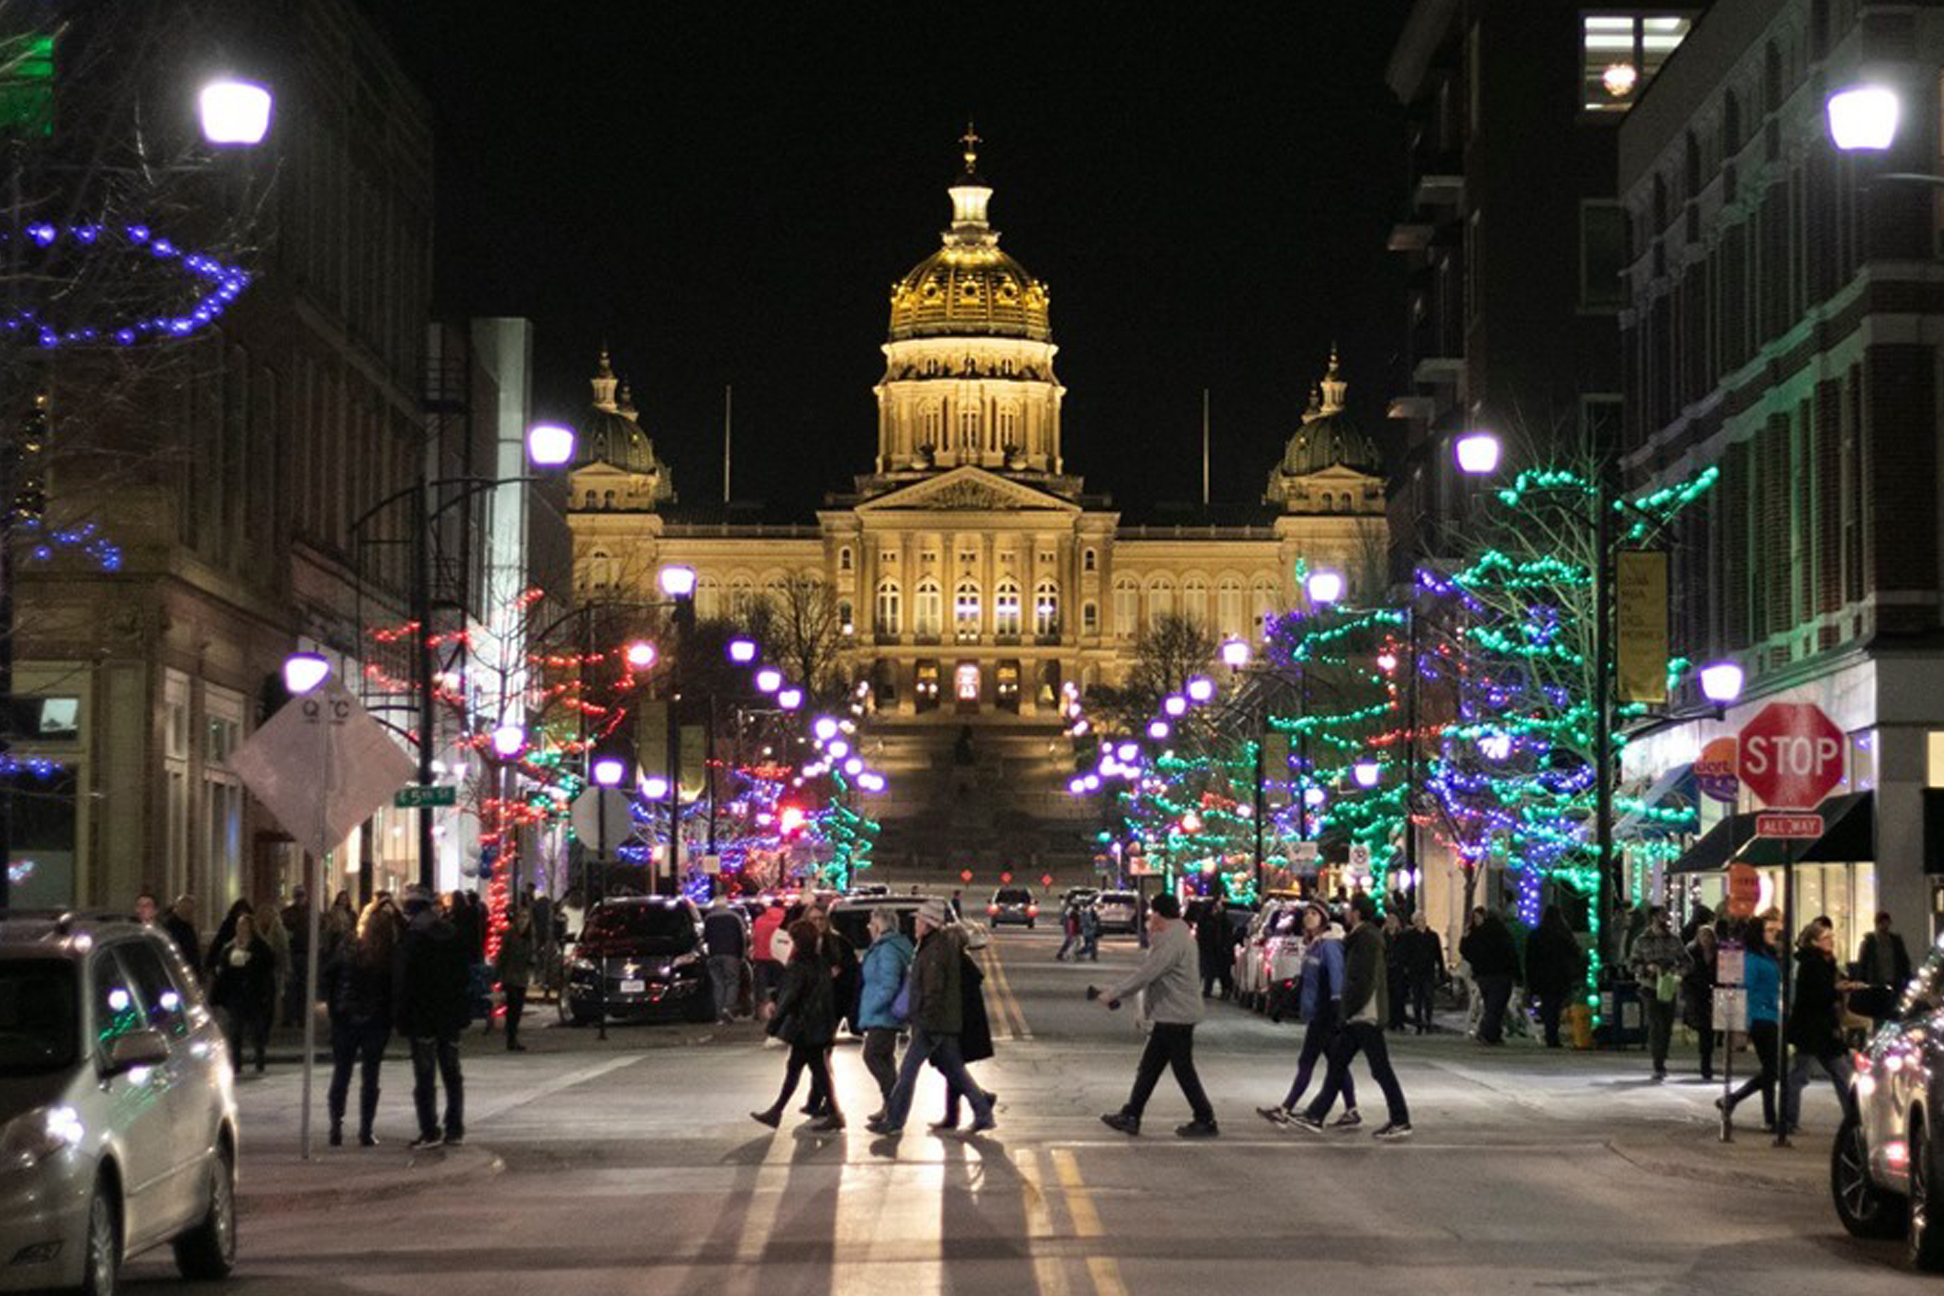 Bustling street with pedestrians, holiday lights and a view of the Iowa Capitol building.